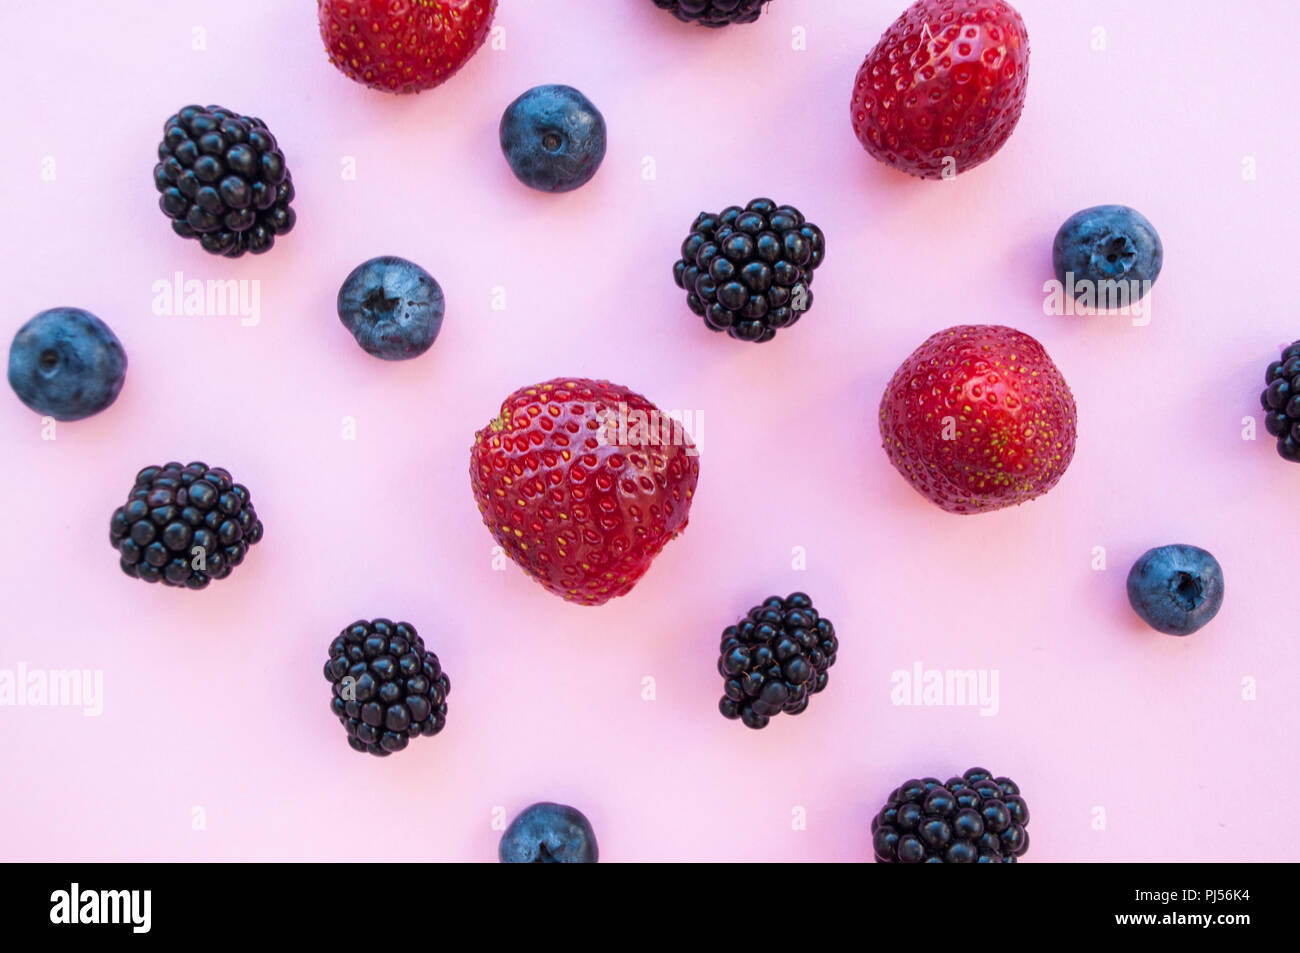 Flat lay of berries on pastel colored background. - Stock Image